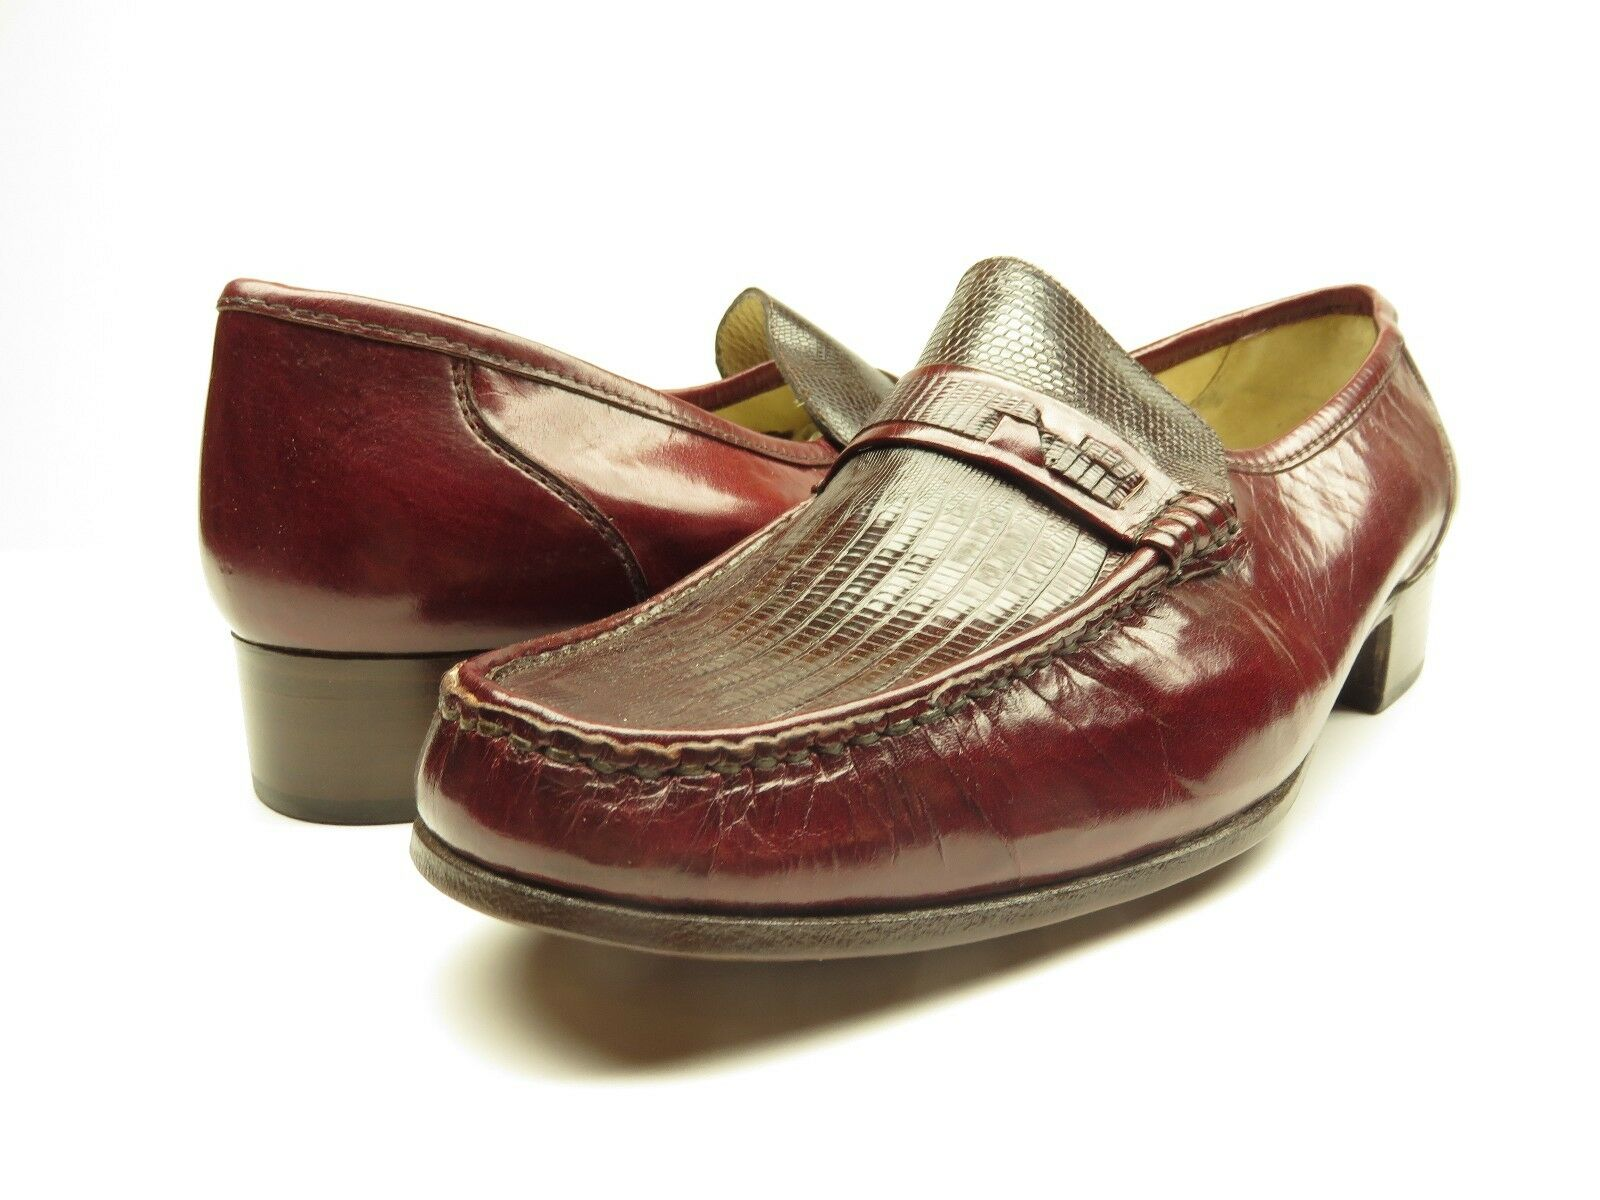 NEW Nettleton Slip-on Loafer Dress shoes Burgandy Size 10 M MADE IN ITALY